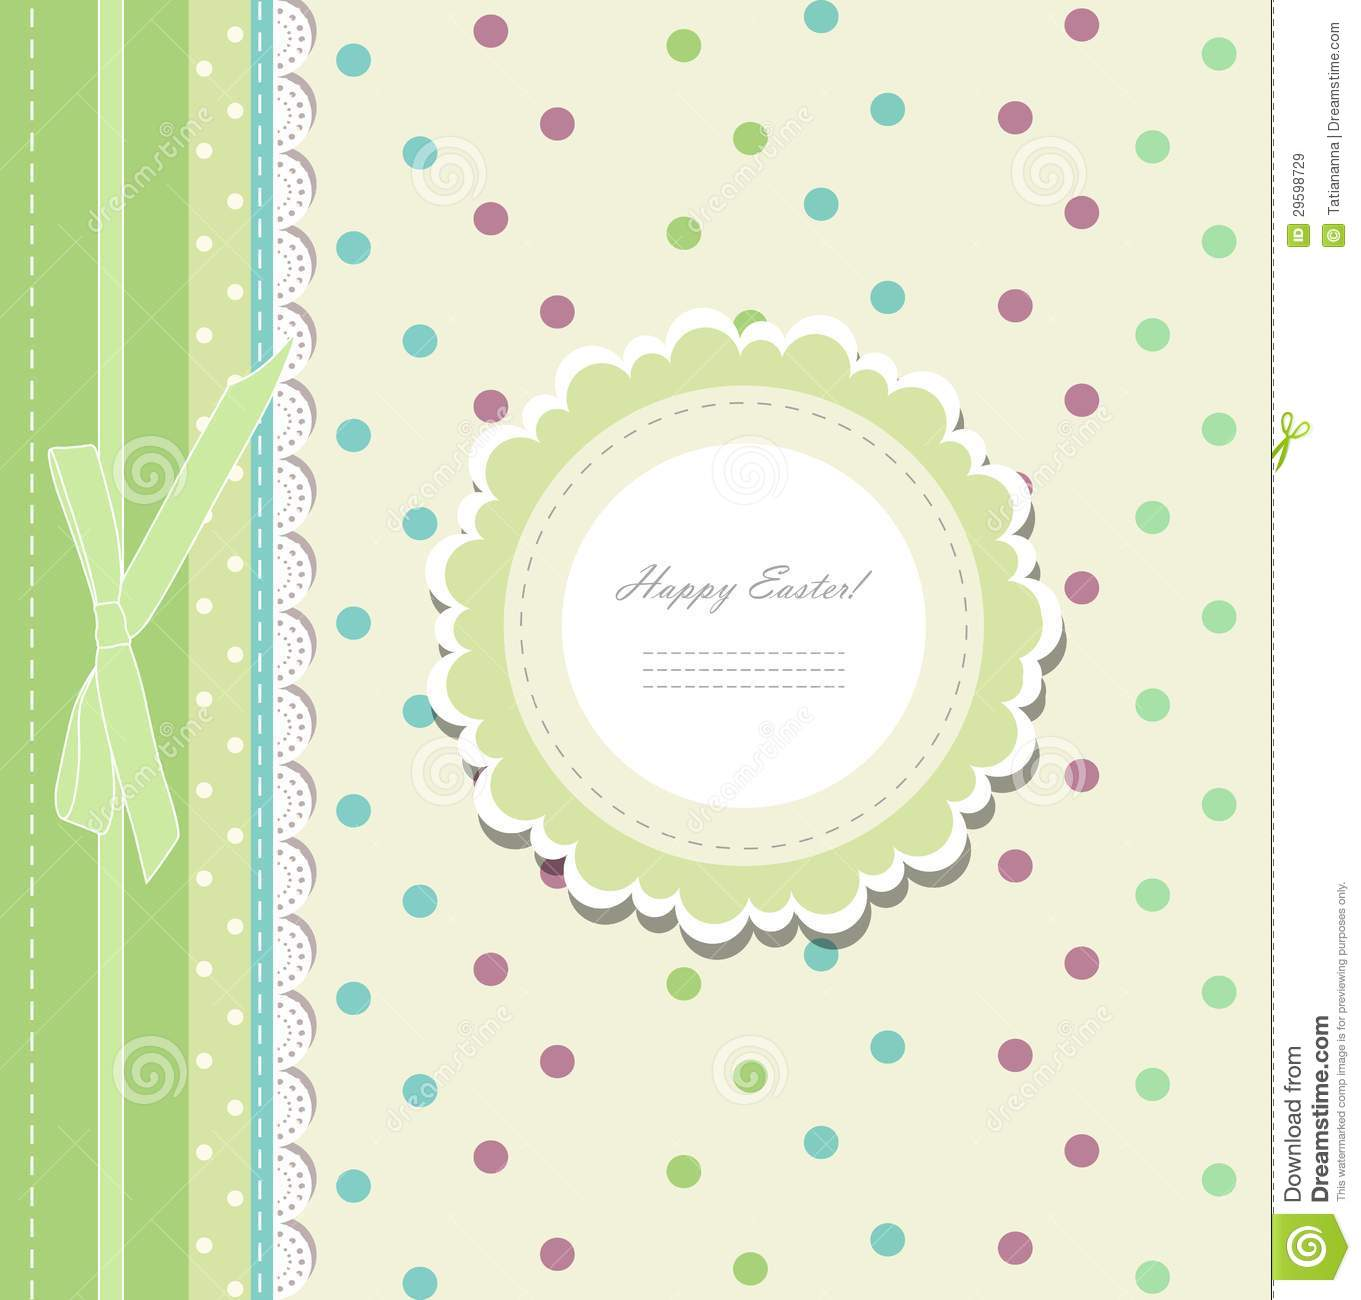 Vintage Baby Shower Album Vector Royalty Free Stock Images  Image 29598729